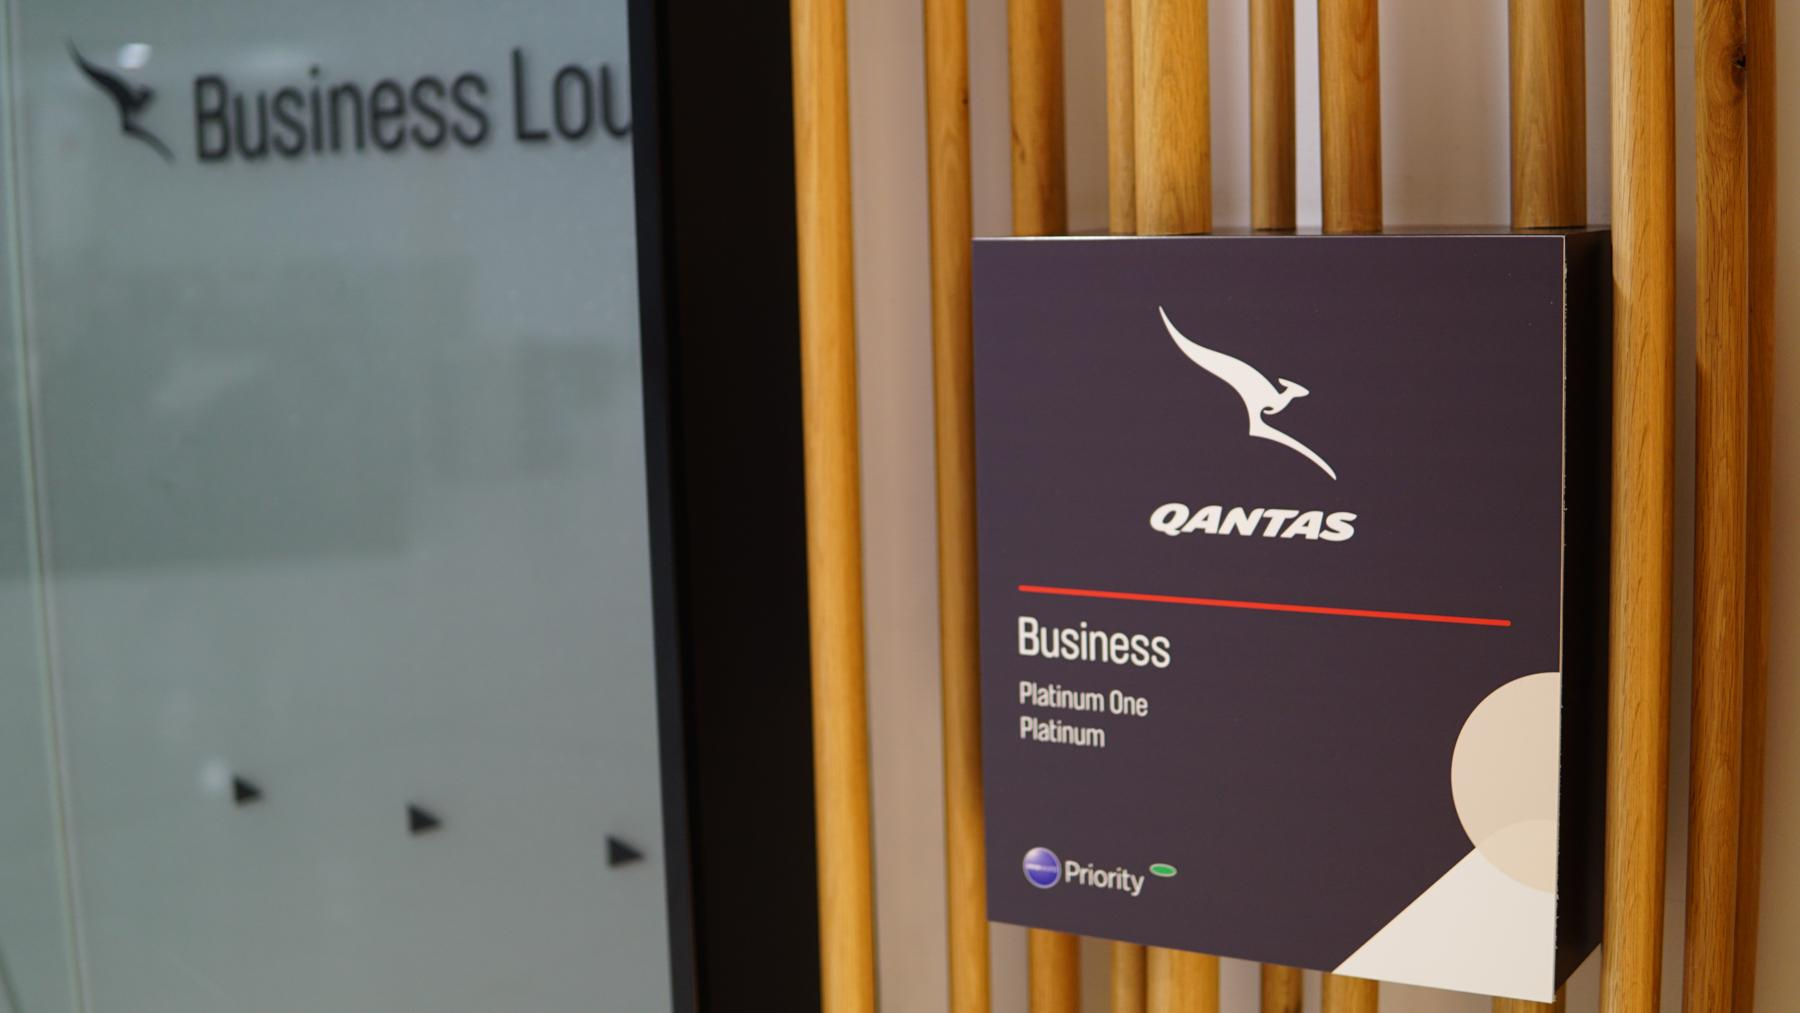 Qantas Perth Business Lounge overview - Point Hacks